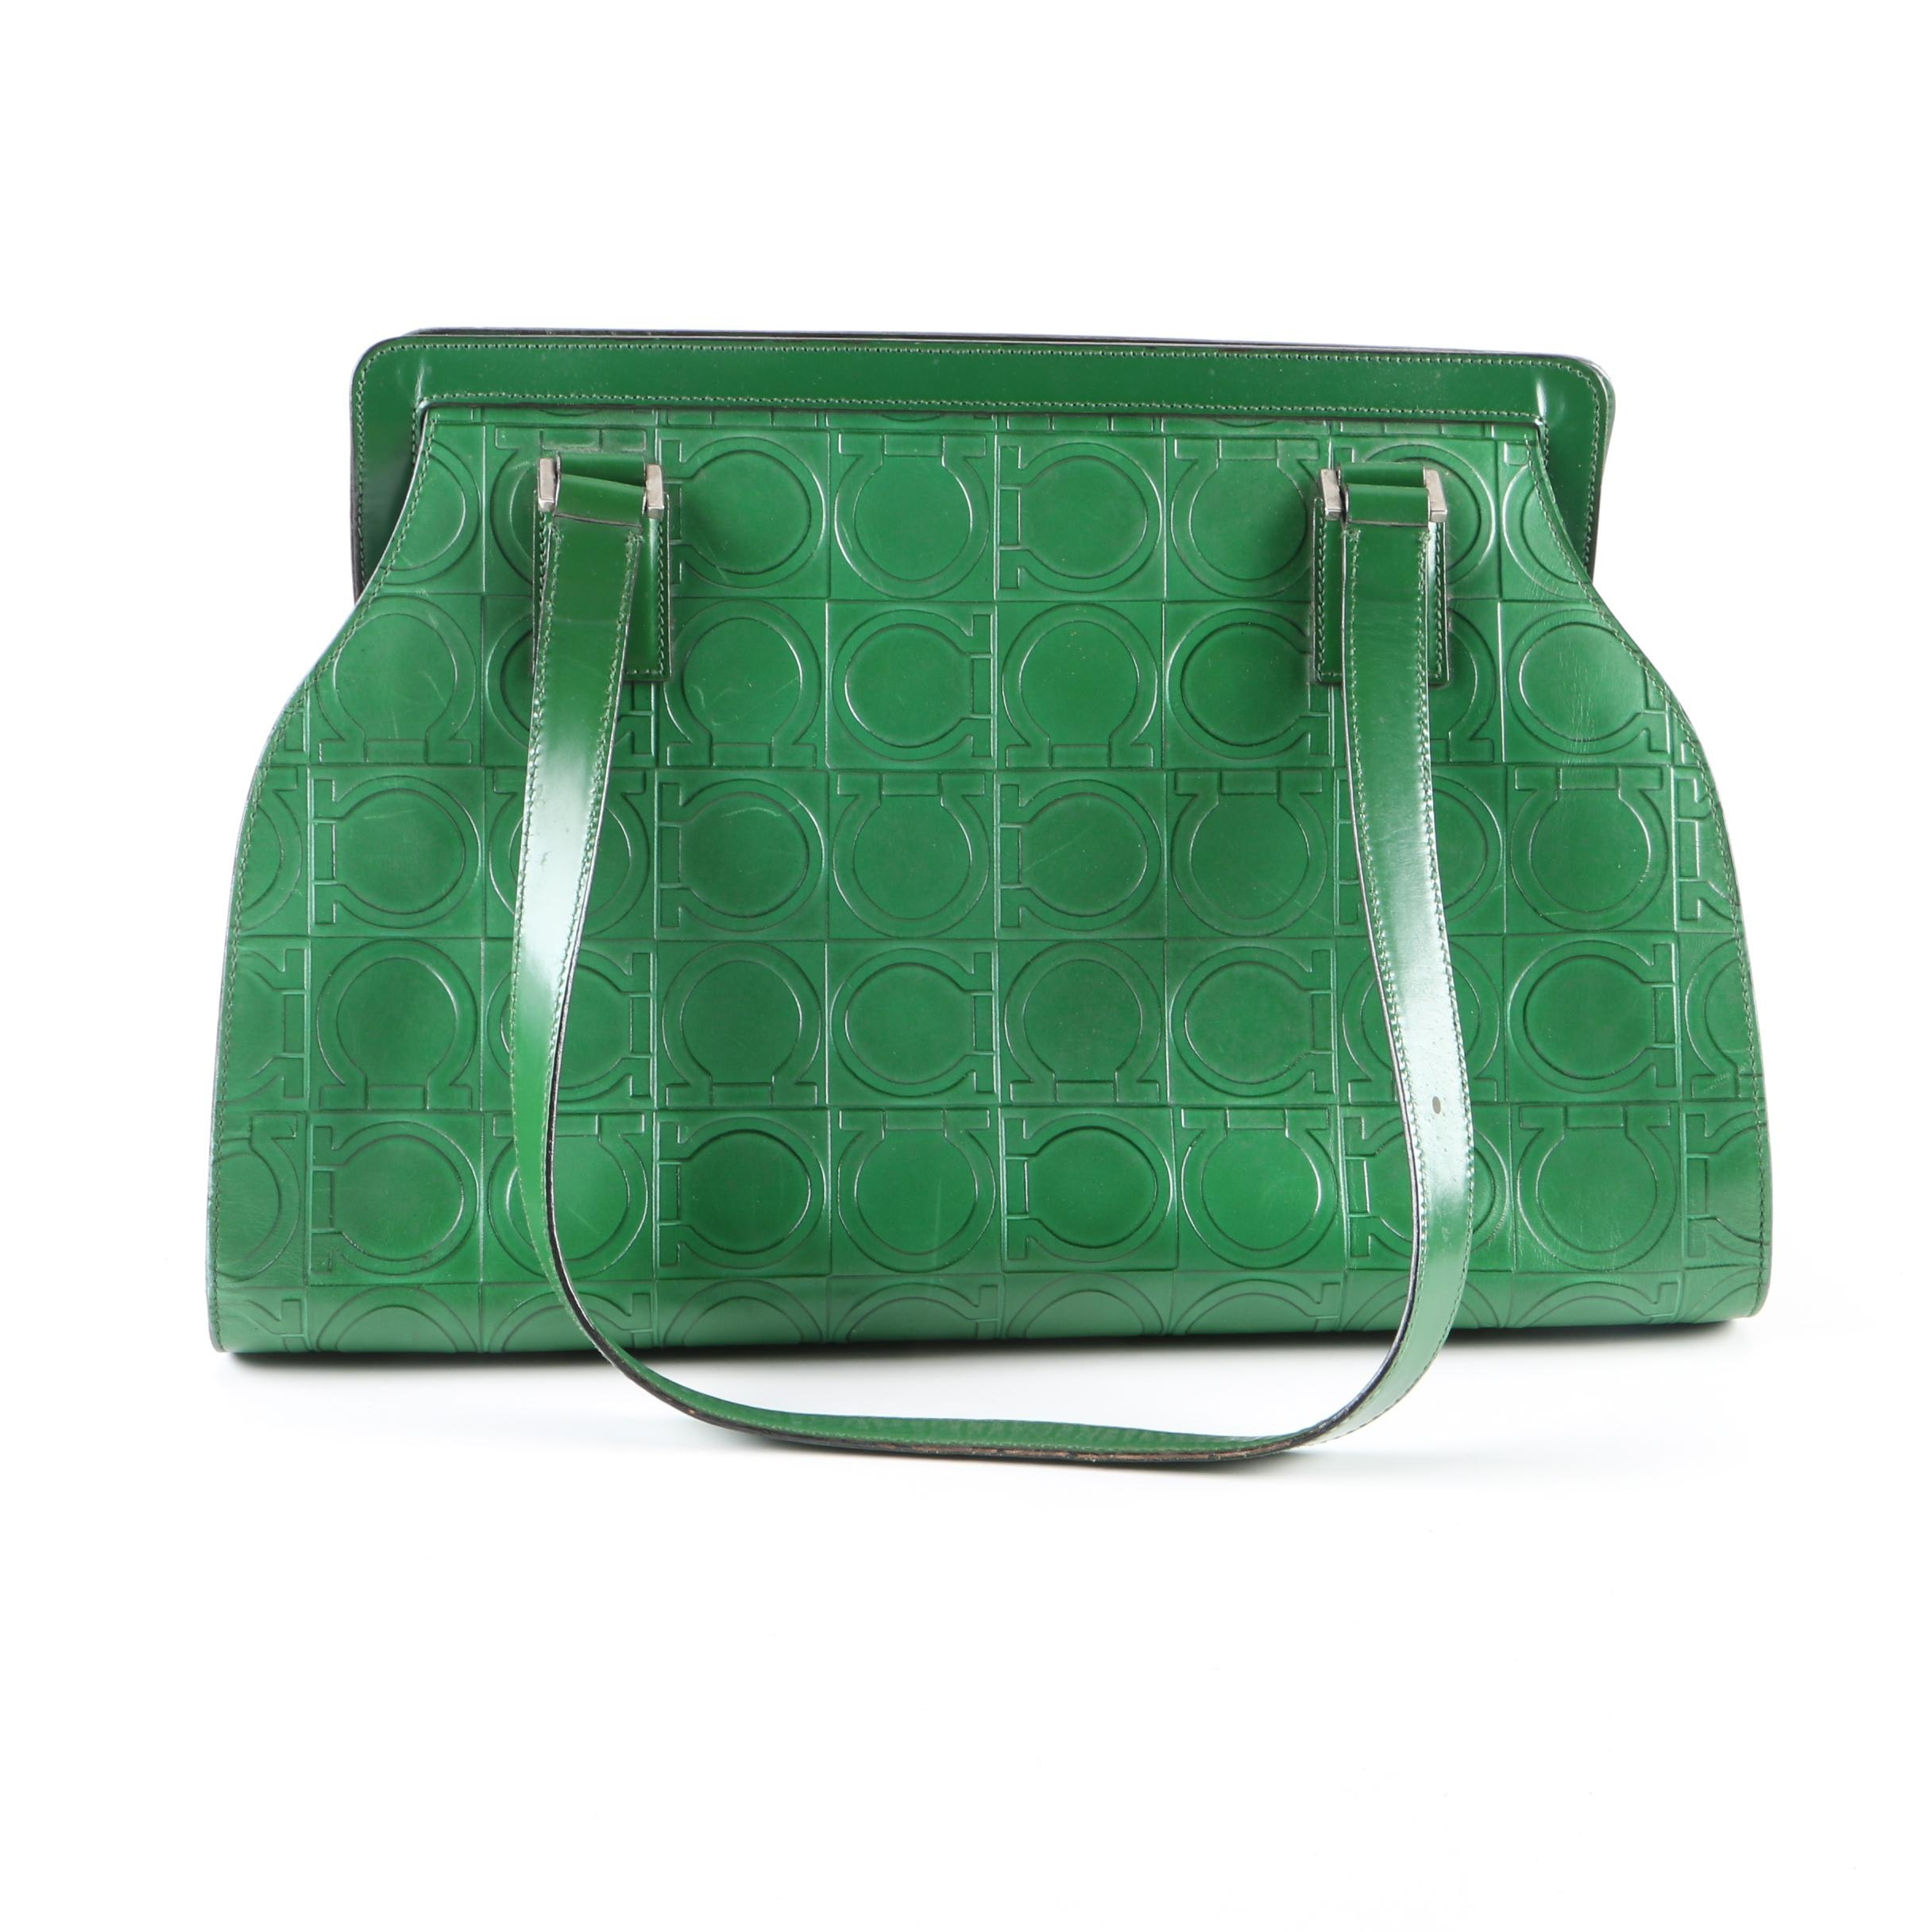 Salvatore Ferragamo Gancio Embossed Green Leather Shoulder Bag